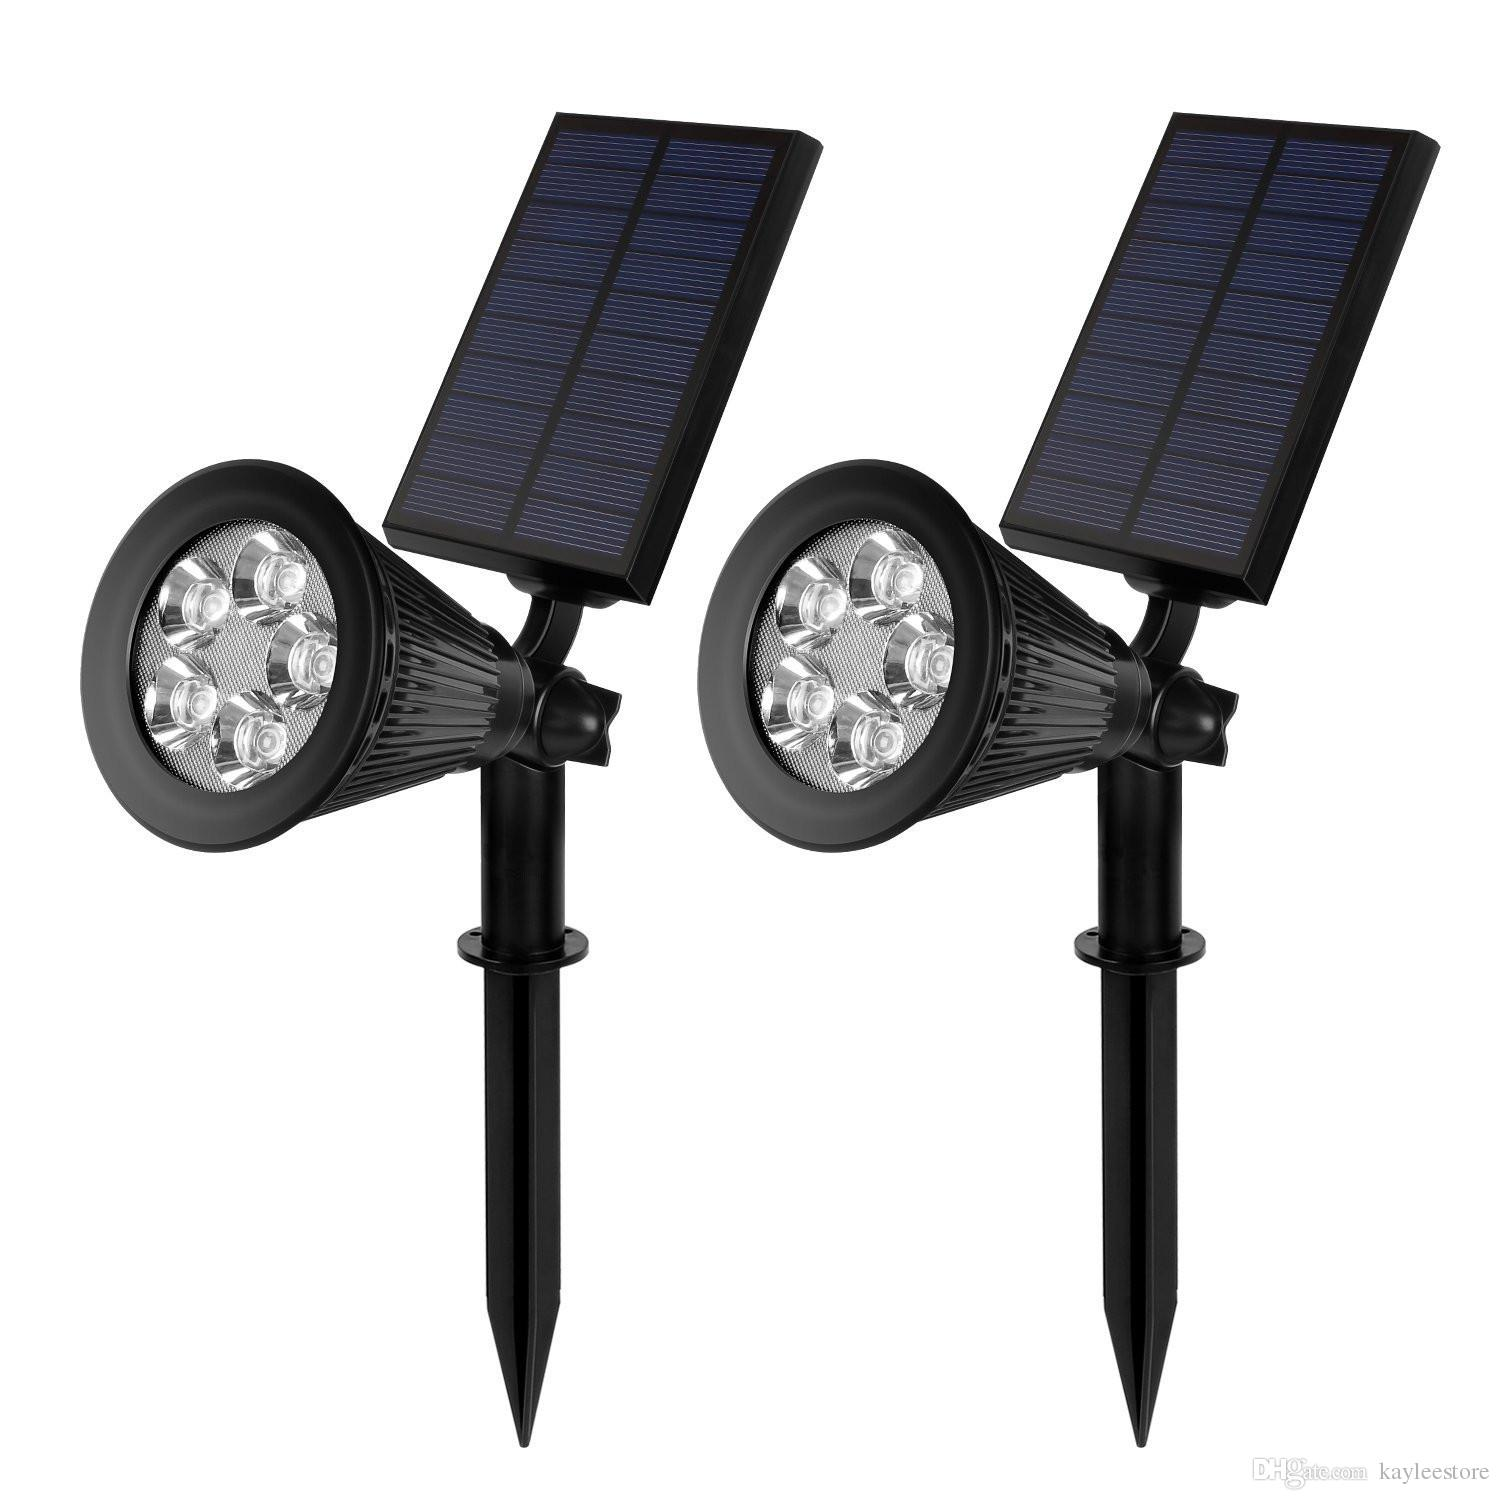 2017 Best Hotselling Solar Lights Led Waterproof Led Spotlights For Outdoor Wall Garden Lawn ...